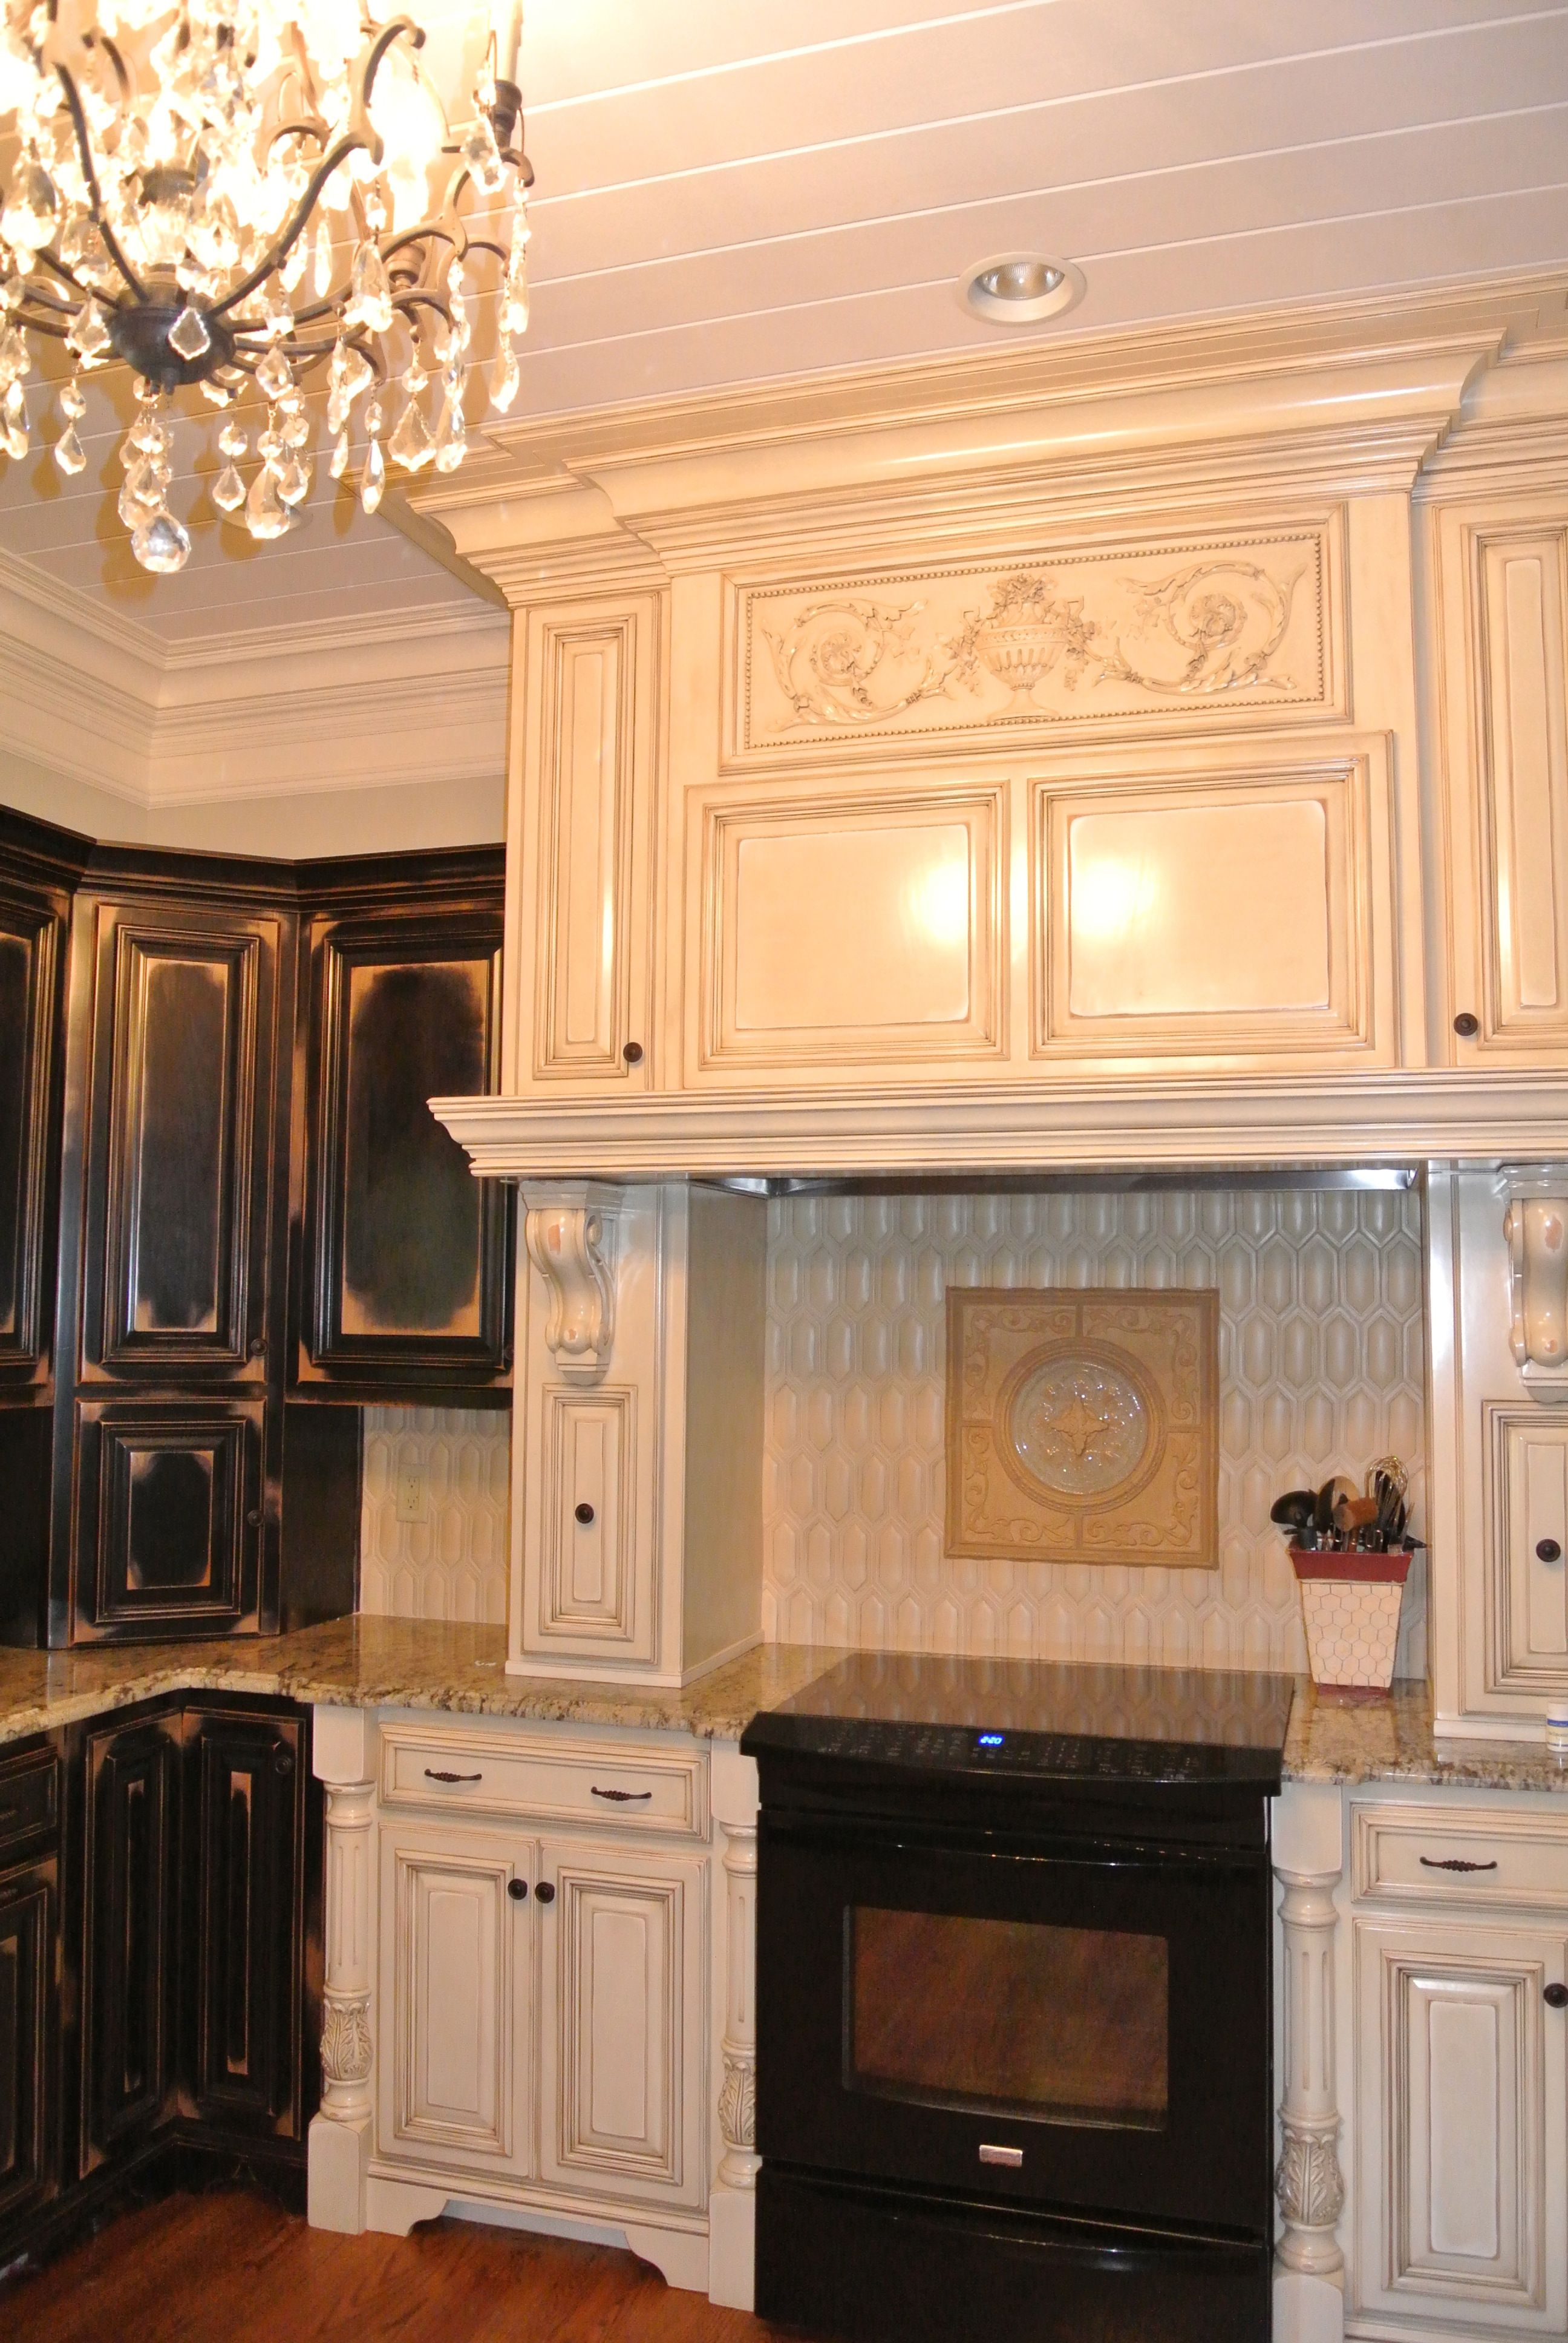 Kitchen Mantel French Country Kitchen Mantel Over Stove Rustic Cabinets